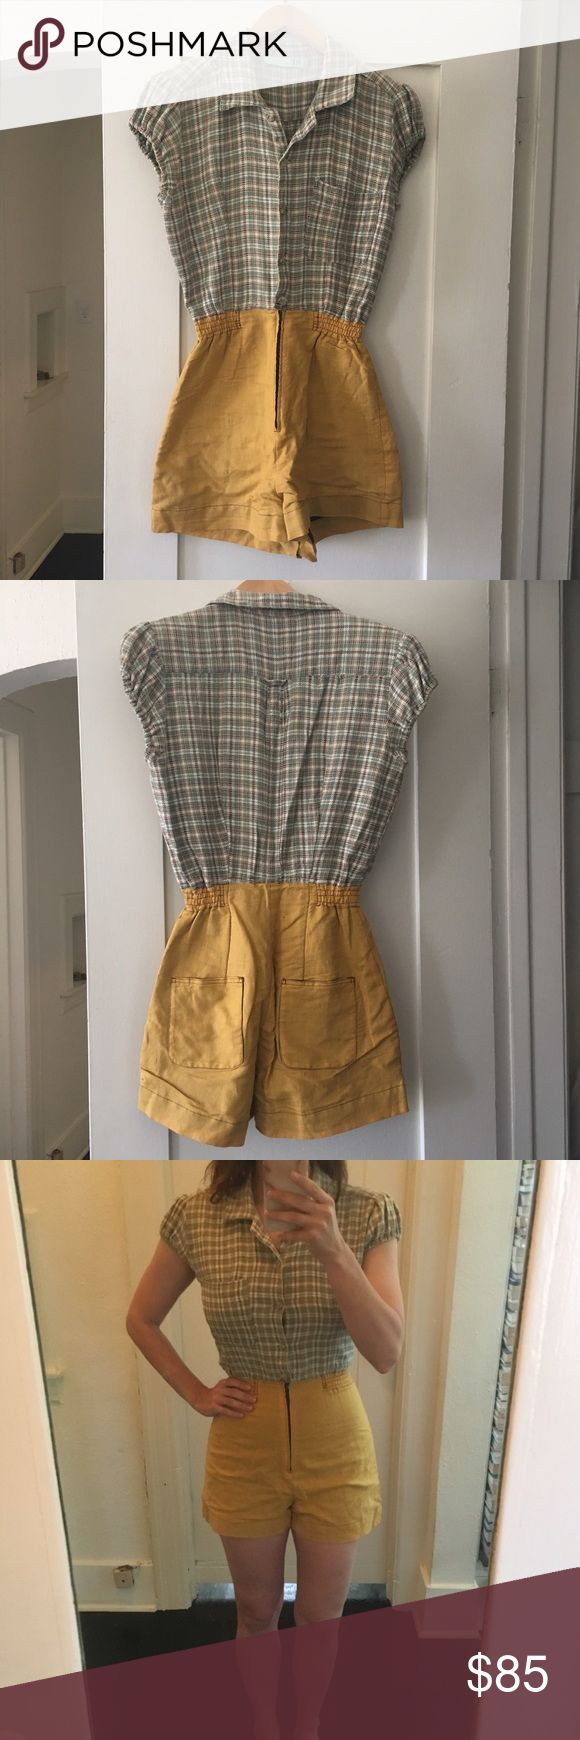 MANDATE OF HEAVEN romper insanely cute handmade romper from indie brooklyn designer MANDATE OF HEAVEN. size 4, EUC! repurposed flannel top with princess sleeves and super flattering high waisted mustard short! perfect for summer ☀️ Urban Outfitters Shorts